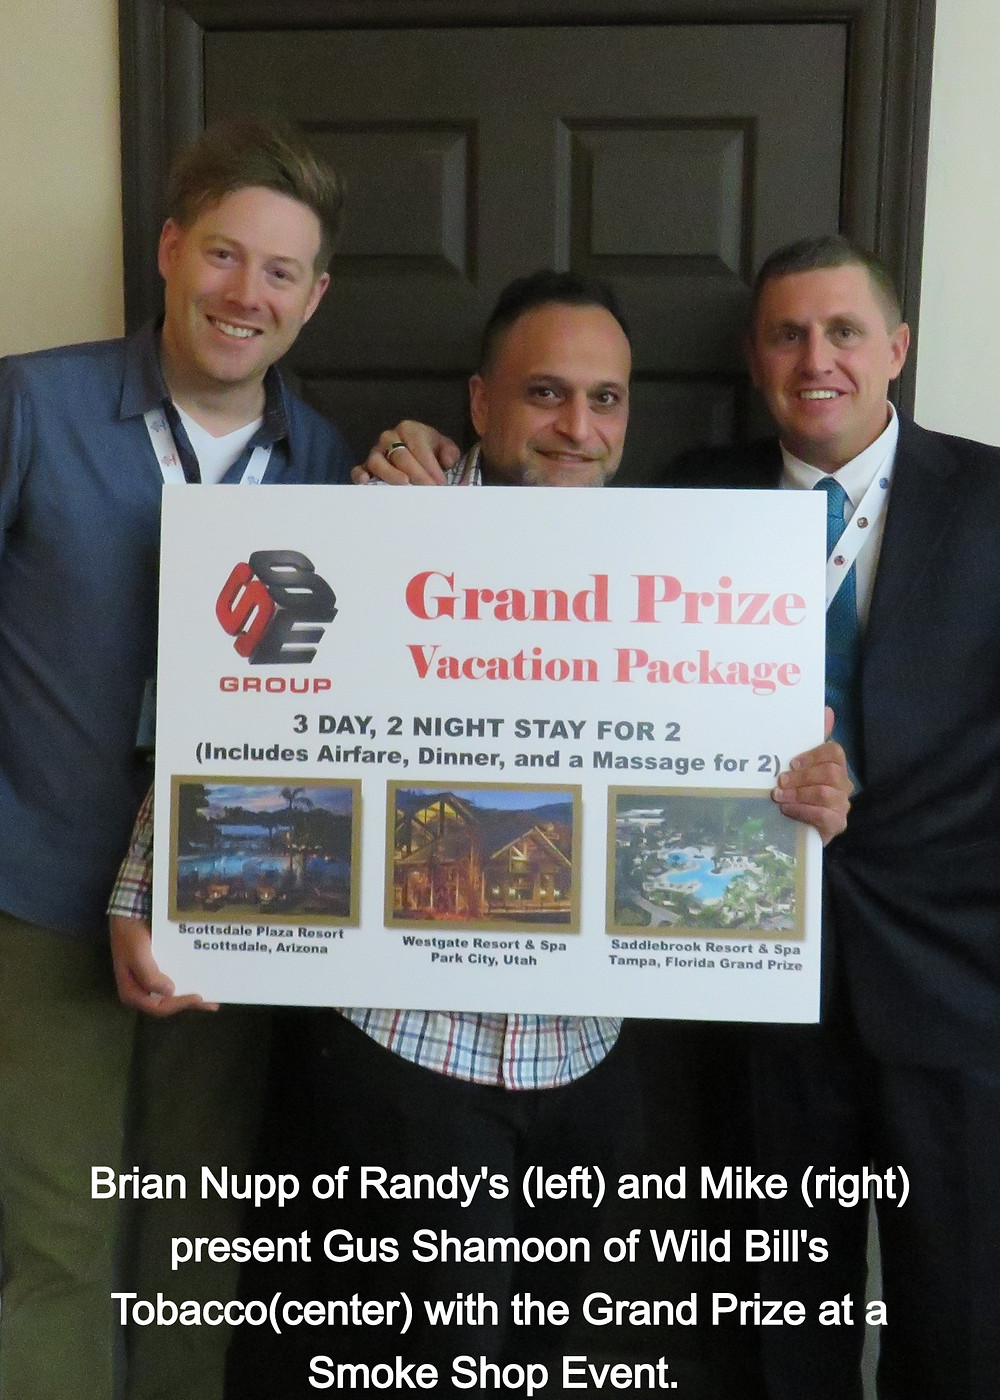 Brian Nupp of Randy's Awards Gus Shamoon of Wild Bill's Tobacco the Grand Prize at Smoke Shop Events in Scottsdale, January 2020